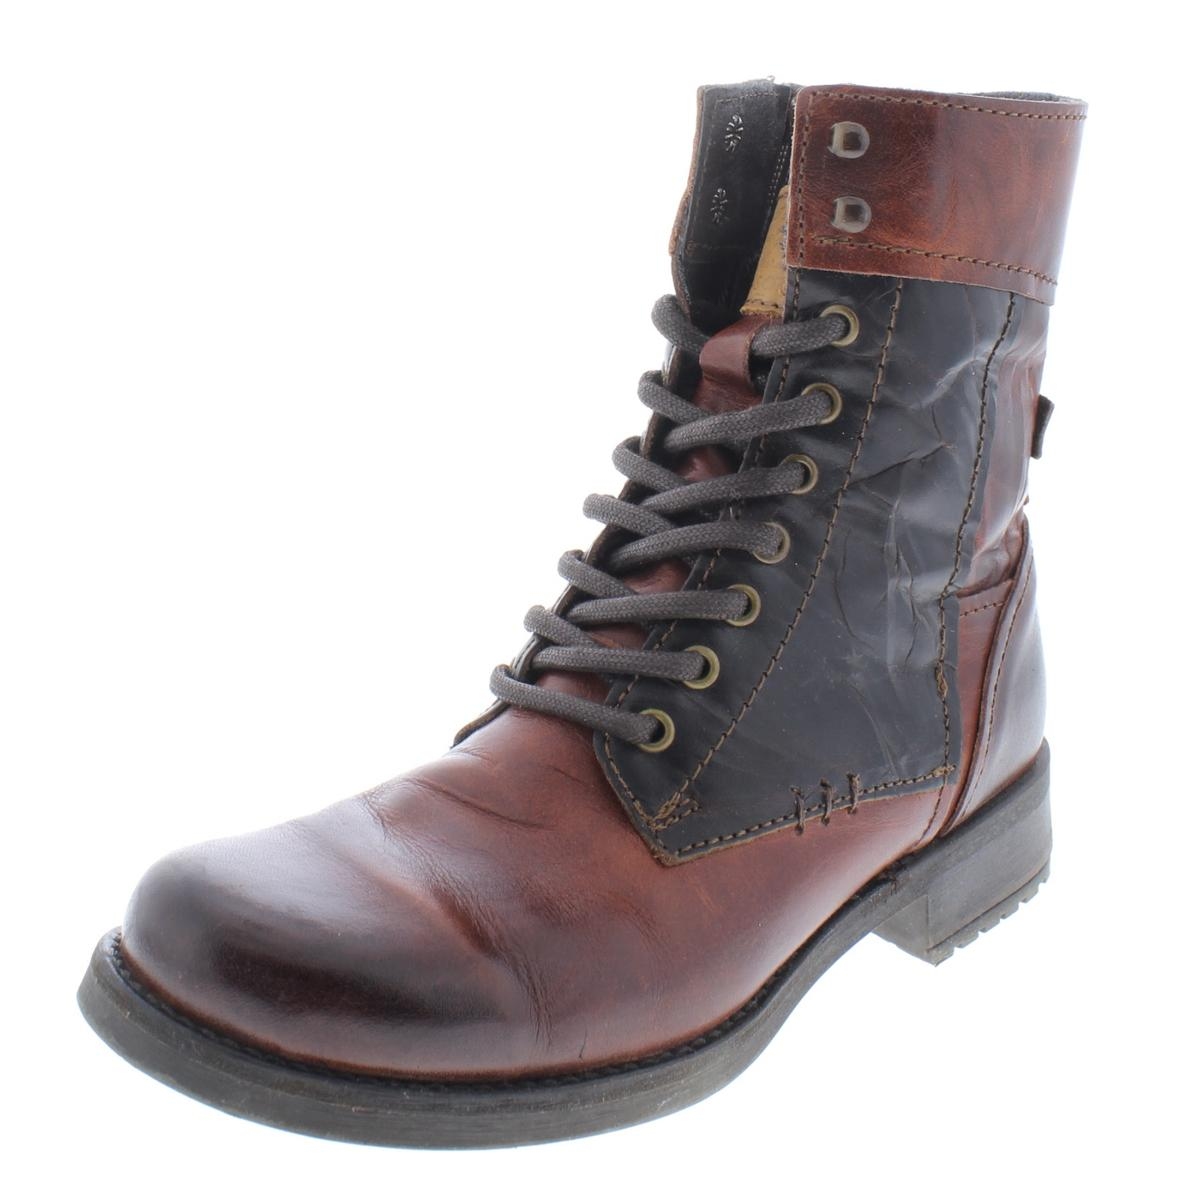 Bernie Mev Womens Brown Ankle Lace-Up Booties shoes 37 Medium (B,M) BHFO 5592